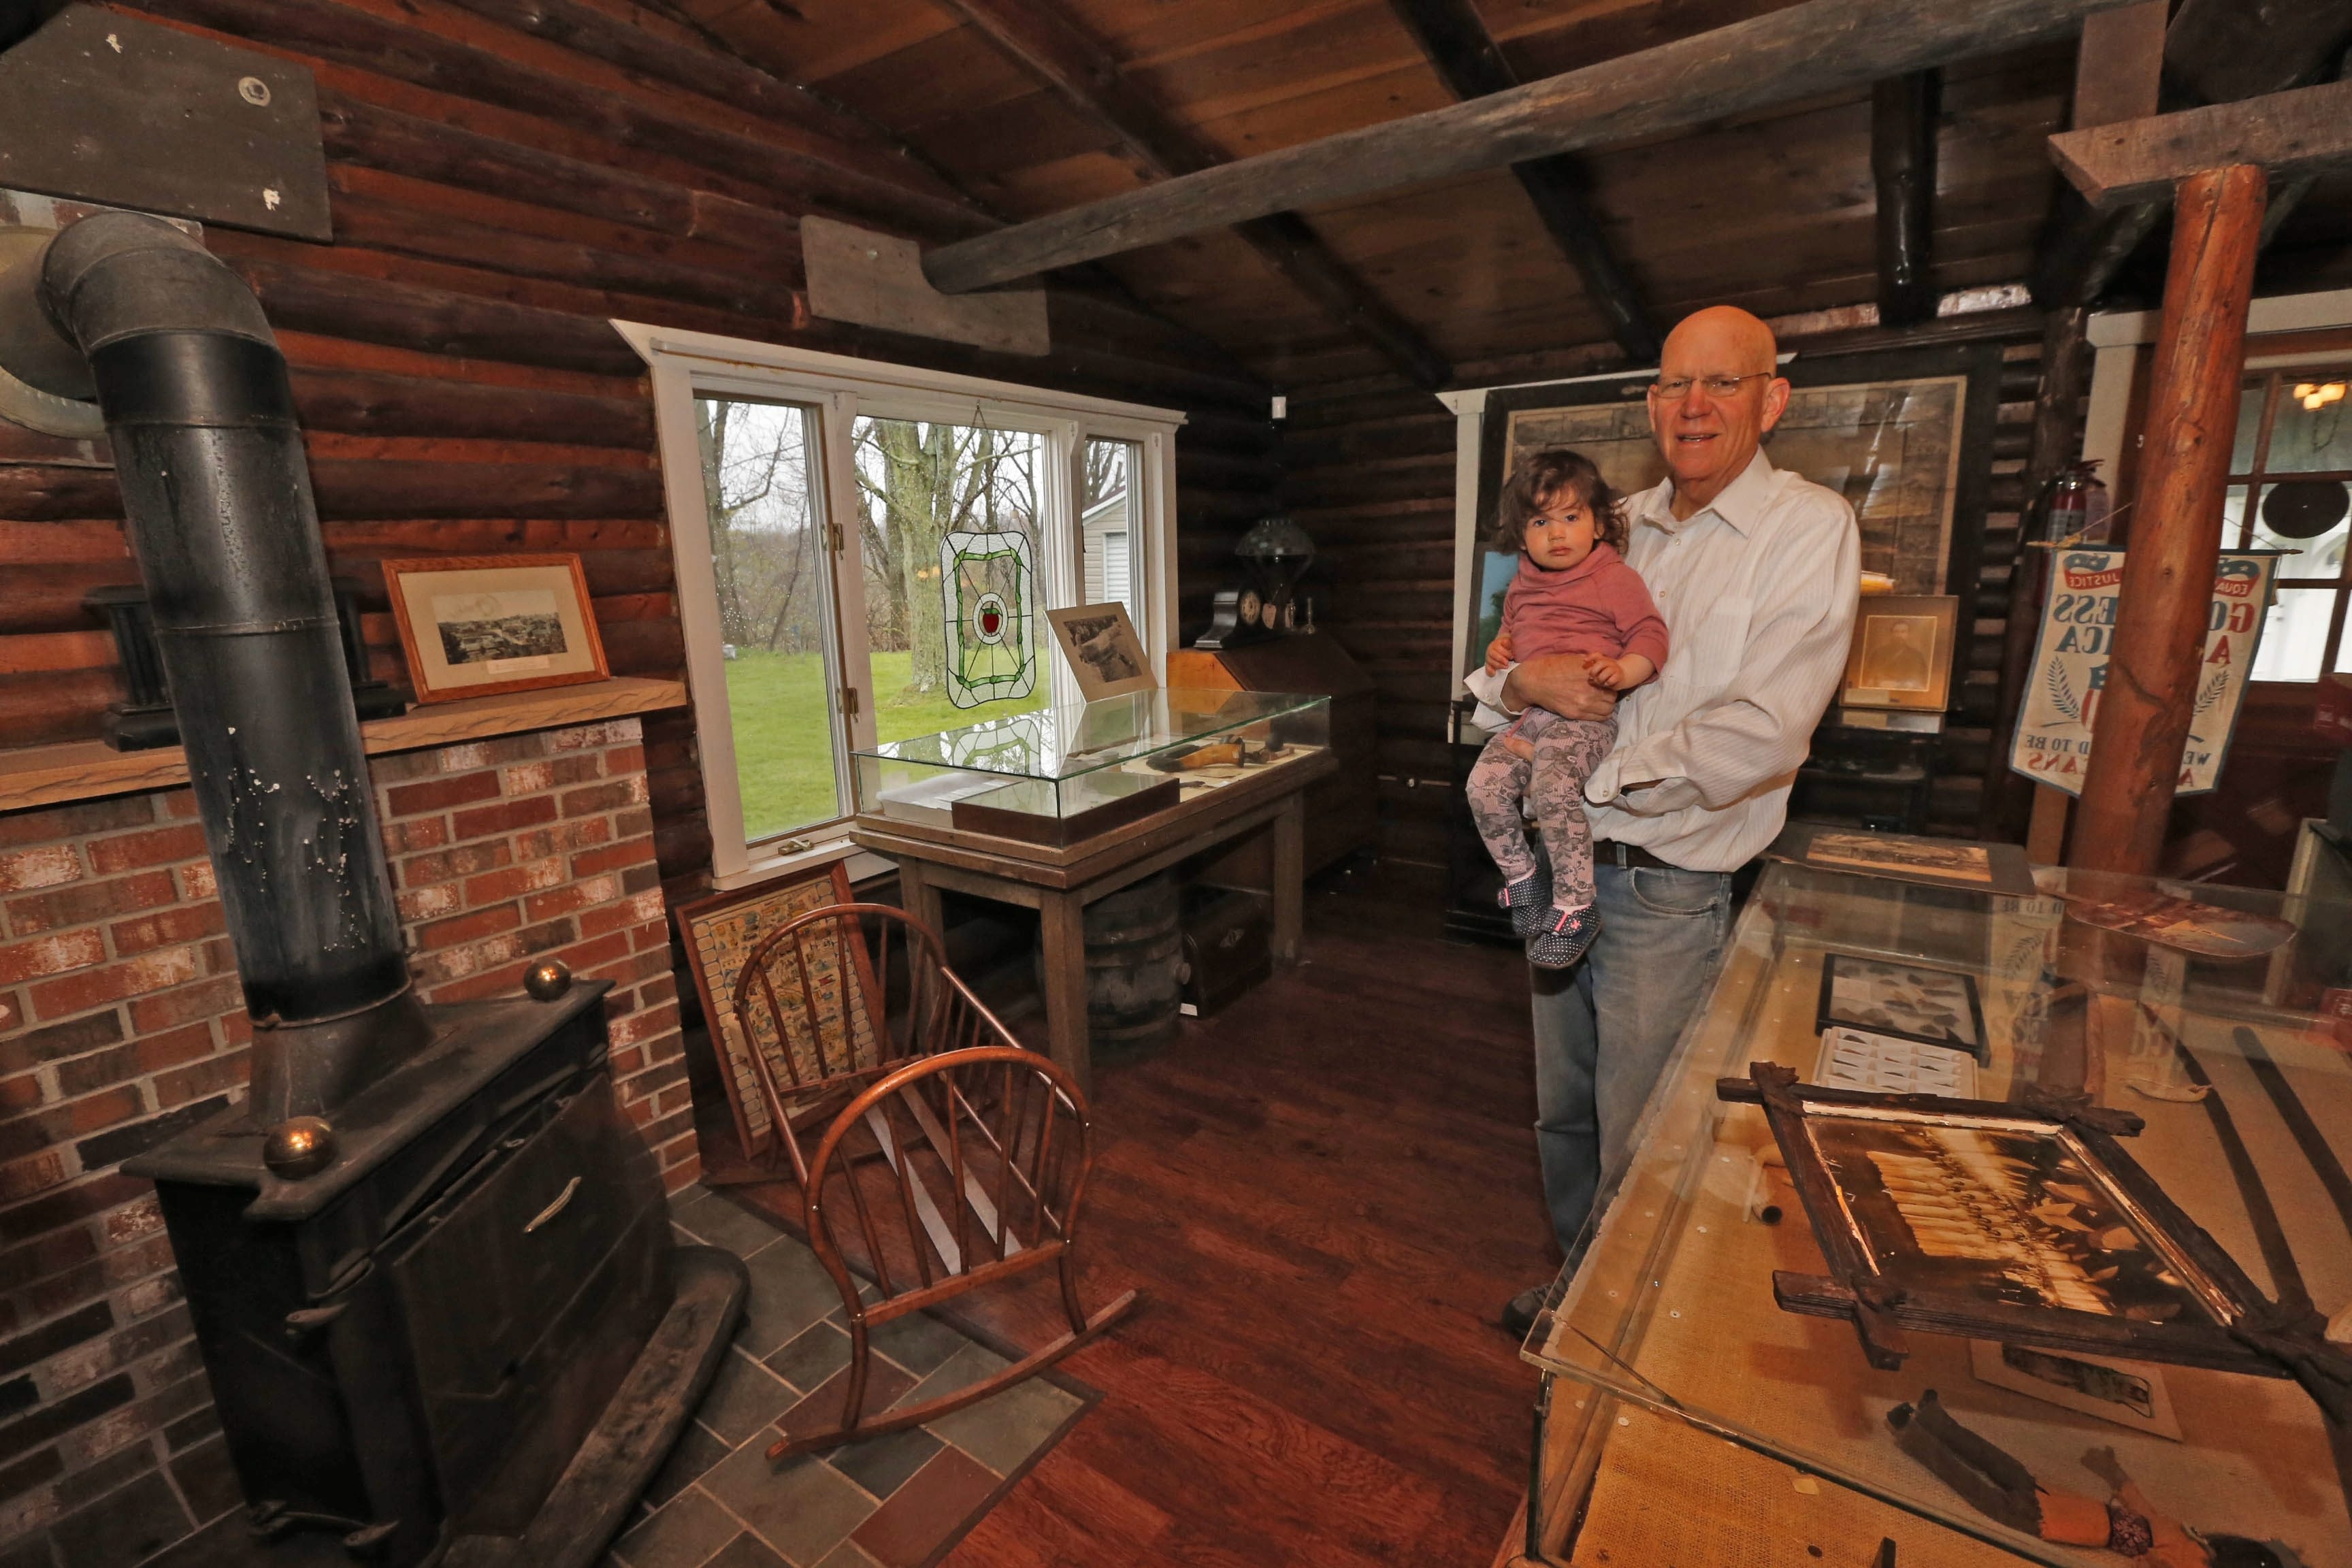 Bill Neidlinger, president of the Newfane Historical Society, holds his 18-month-old granddaughter, Makenna Keys, in the society's log cabin, which is reopening in time for the Apple Blossom Festival.